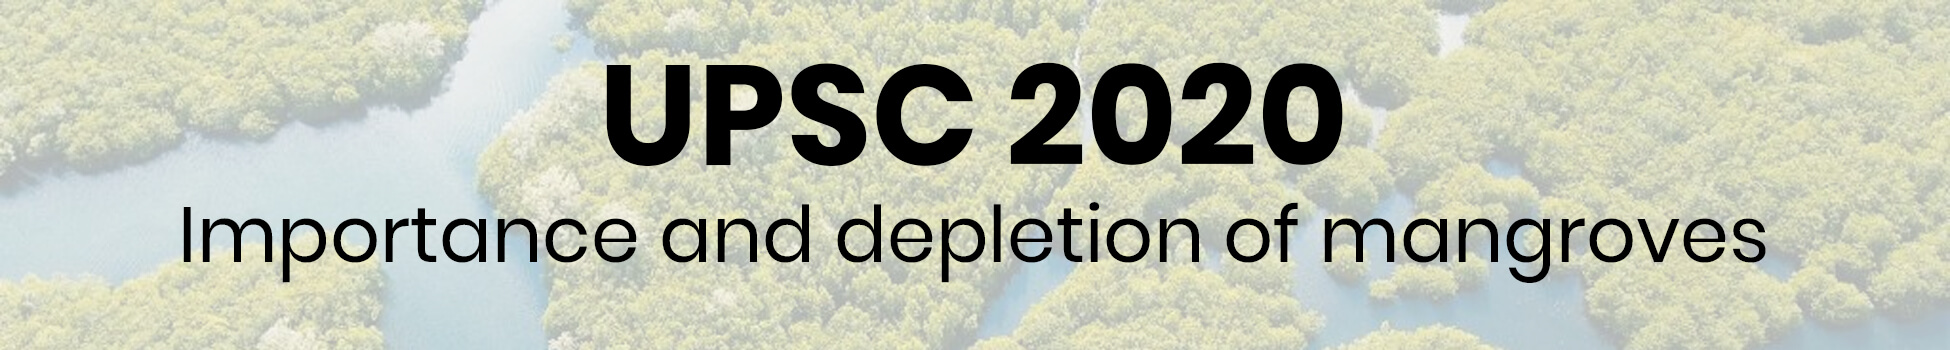 Importance and depletion of mangroves | UPSC 2020